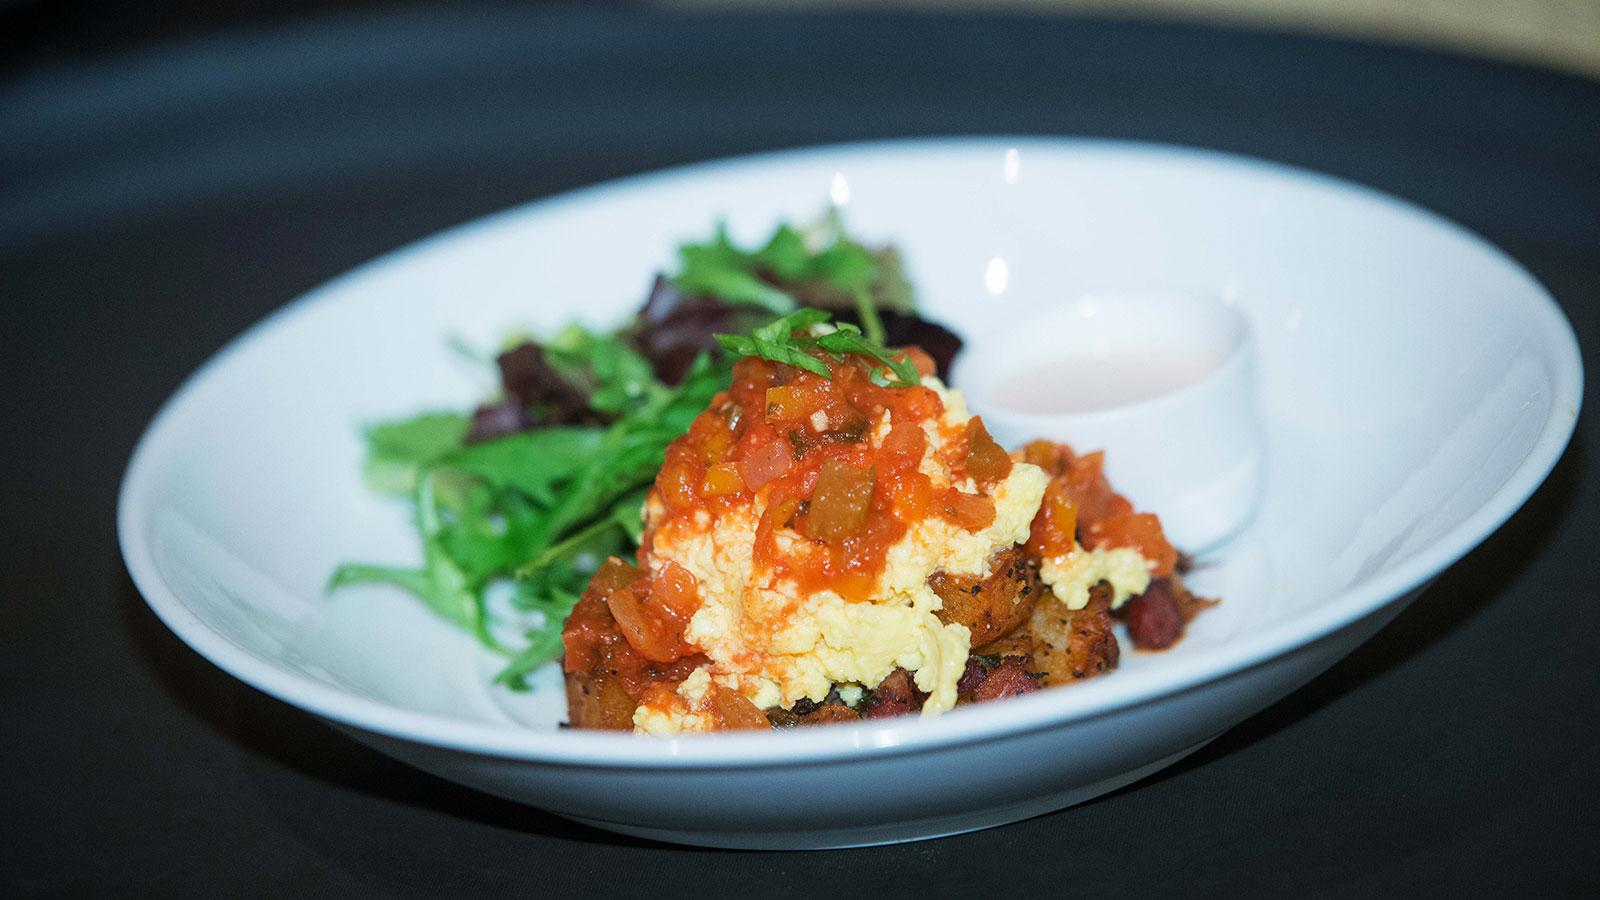 Brisson's dish of Tchoupitoulas Hash, soft scrambled eggs, creole sauce and a small salad of greens.